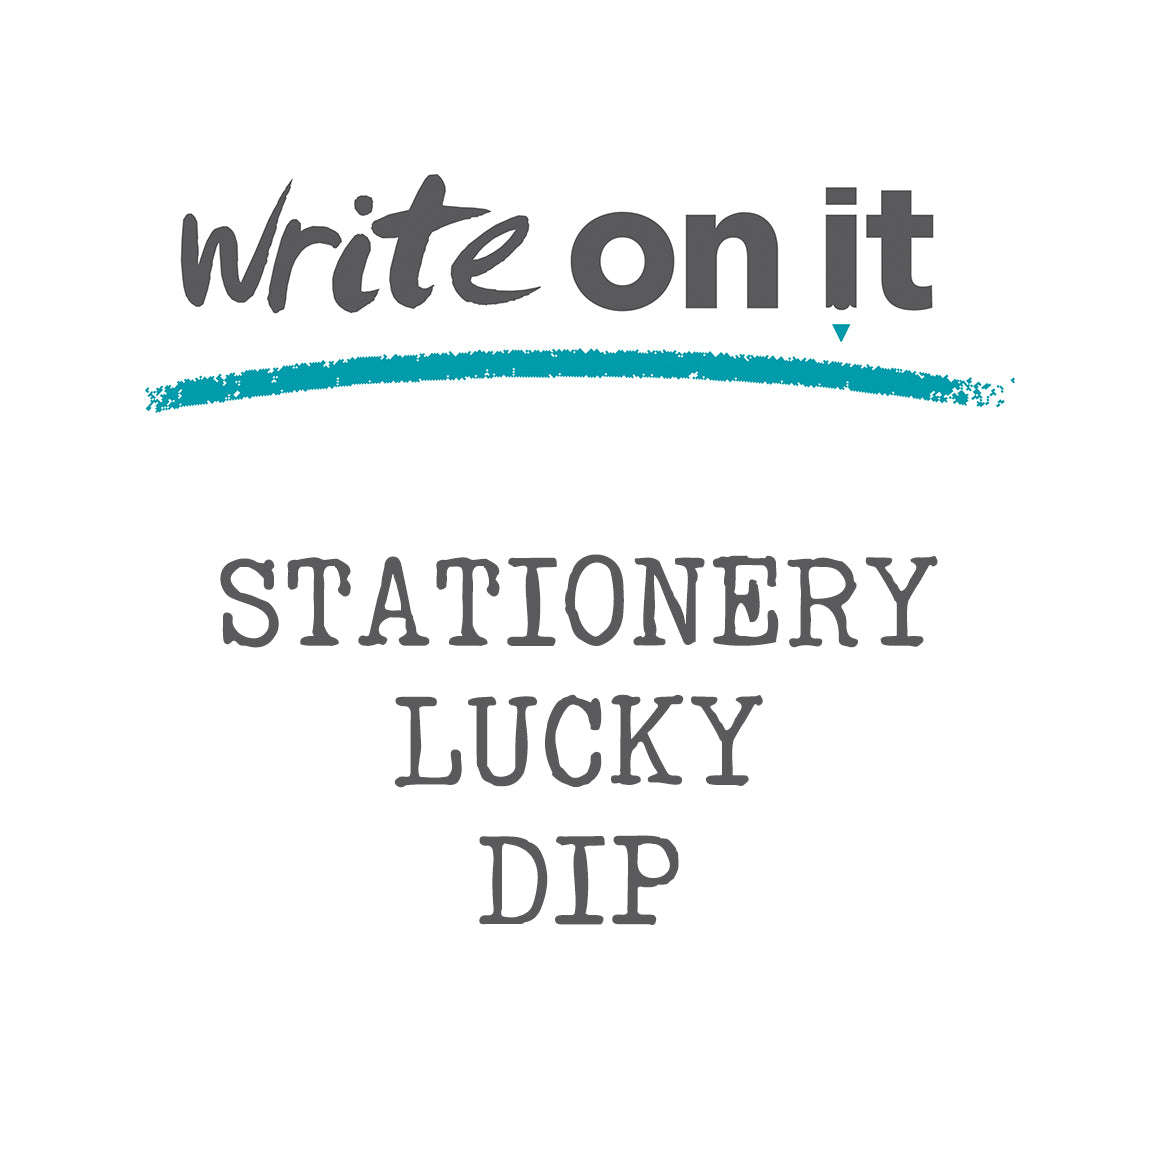 Stationery Lucky Dip